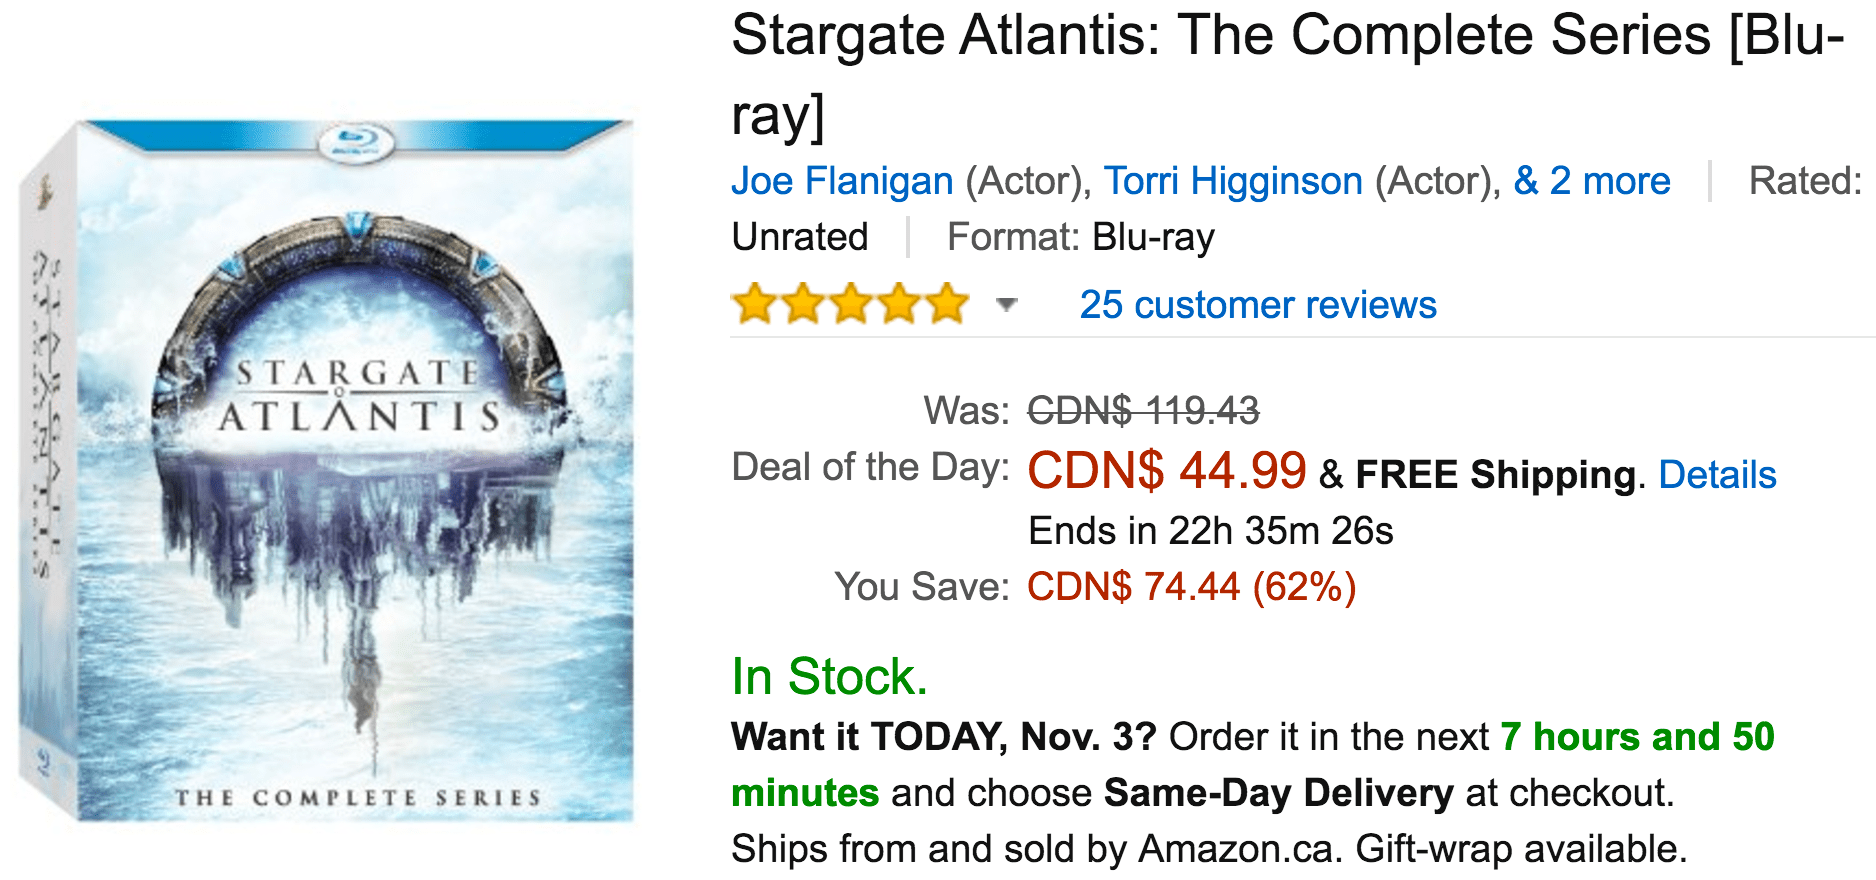 Amazon Canada Deals Of The Day: Save 62% On Stargate Atlantis: The Complete Series & More Offers